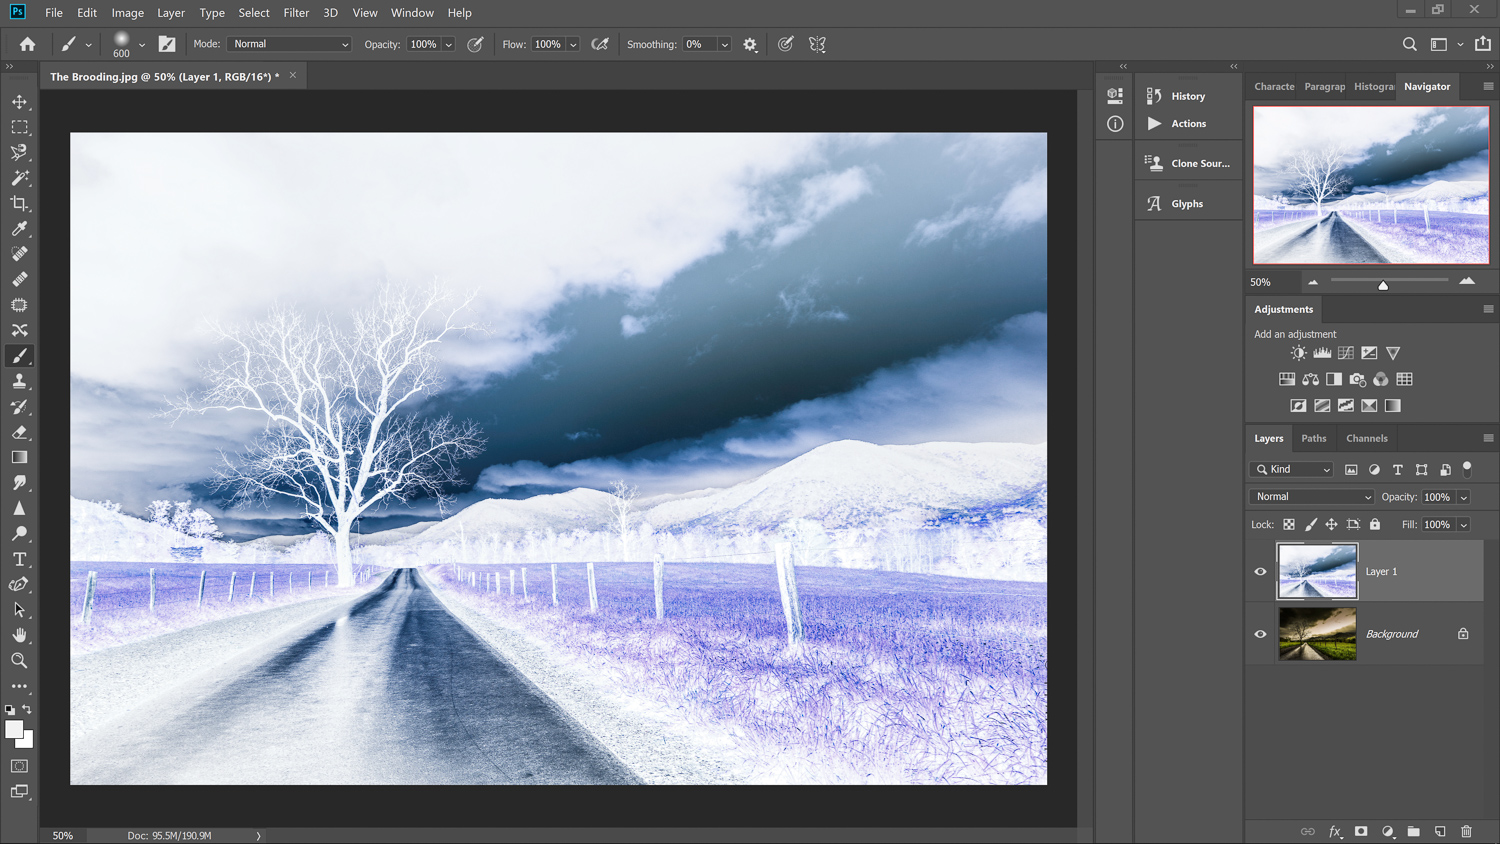 Inverted layer for Infrared photography in Photoshop